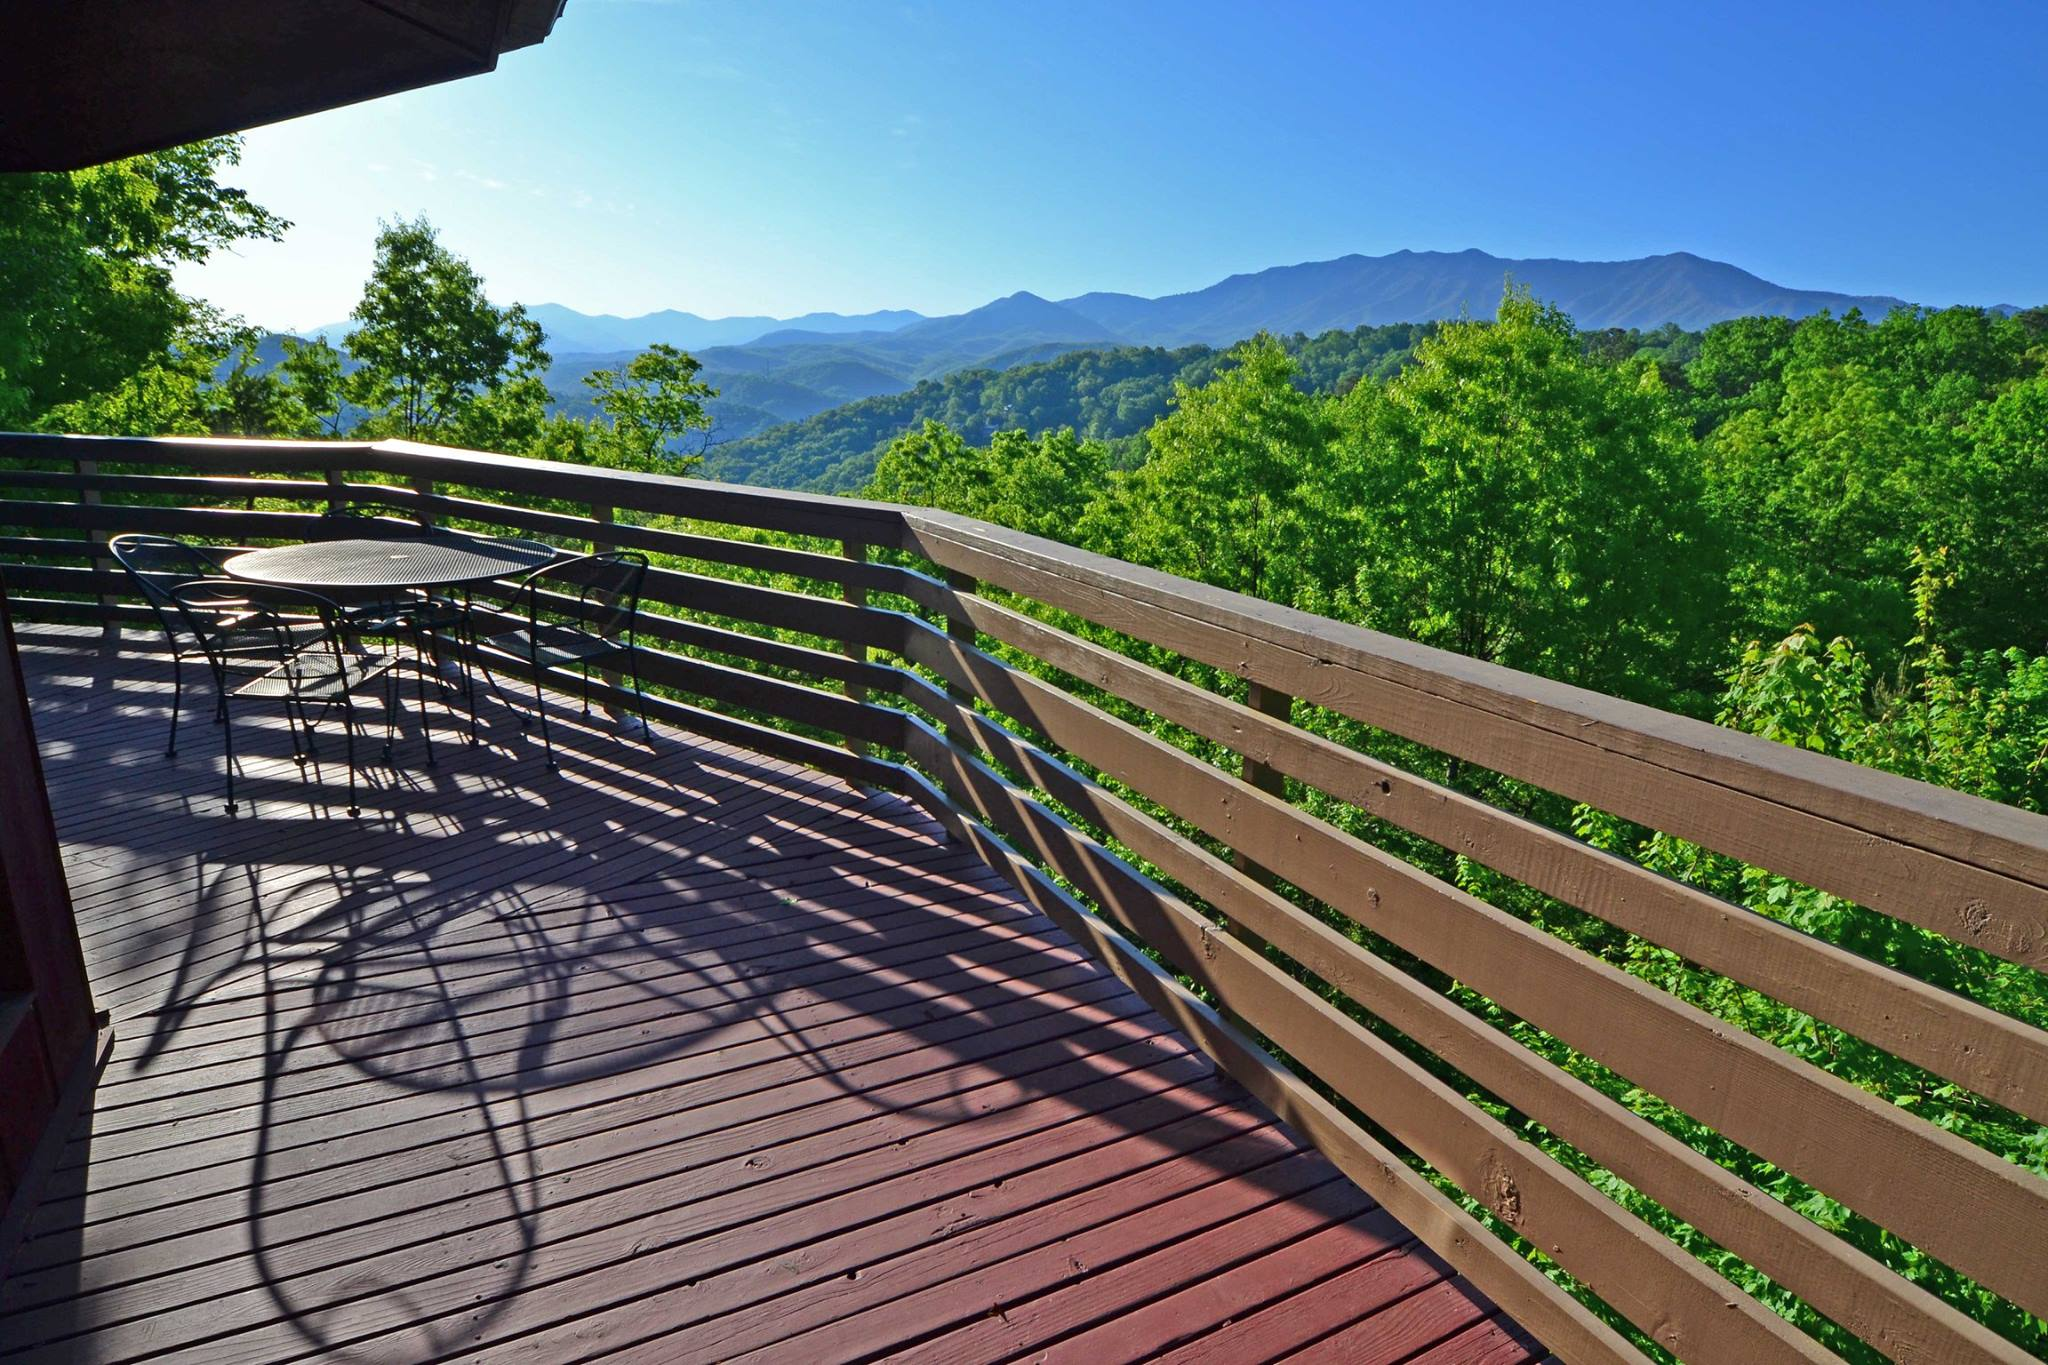 Chalet-Village-Properties-Deck-View-Gatlinburg-Great-Smoky-Mountains-Tennessee.